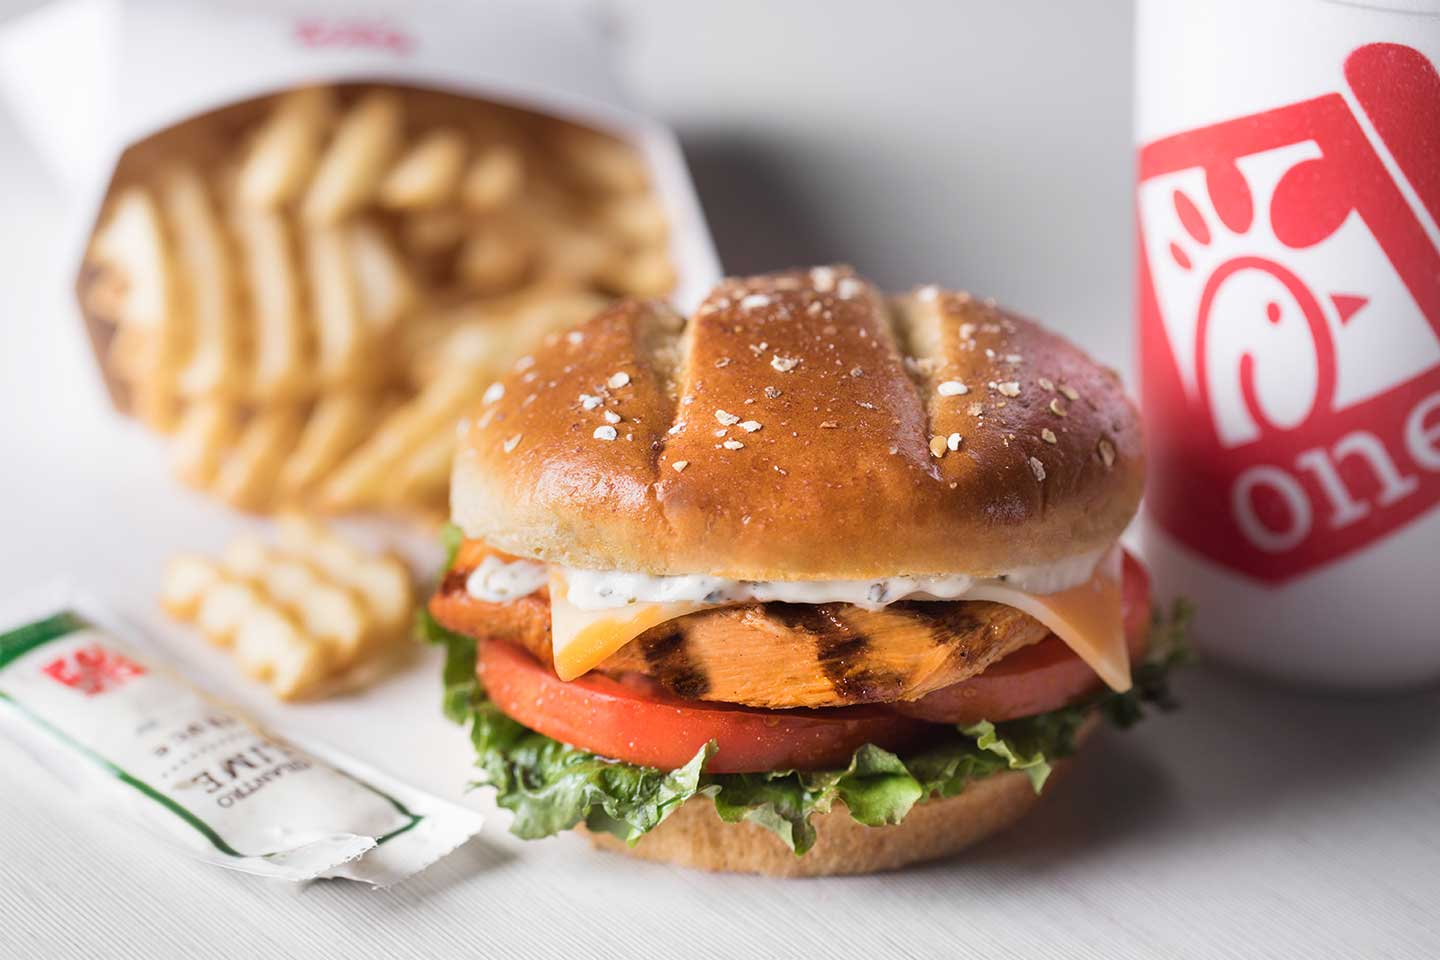 image relating to Chick Fil a Printable Menu named Adorable and spicy! Chick-fil-A tests refreshing menu products within